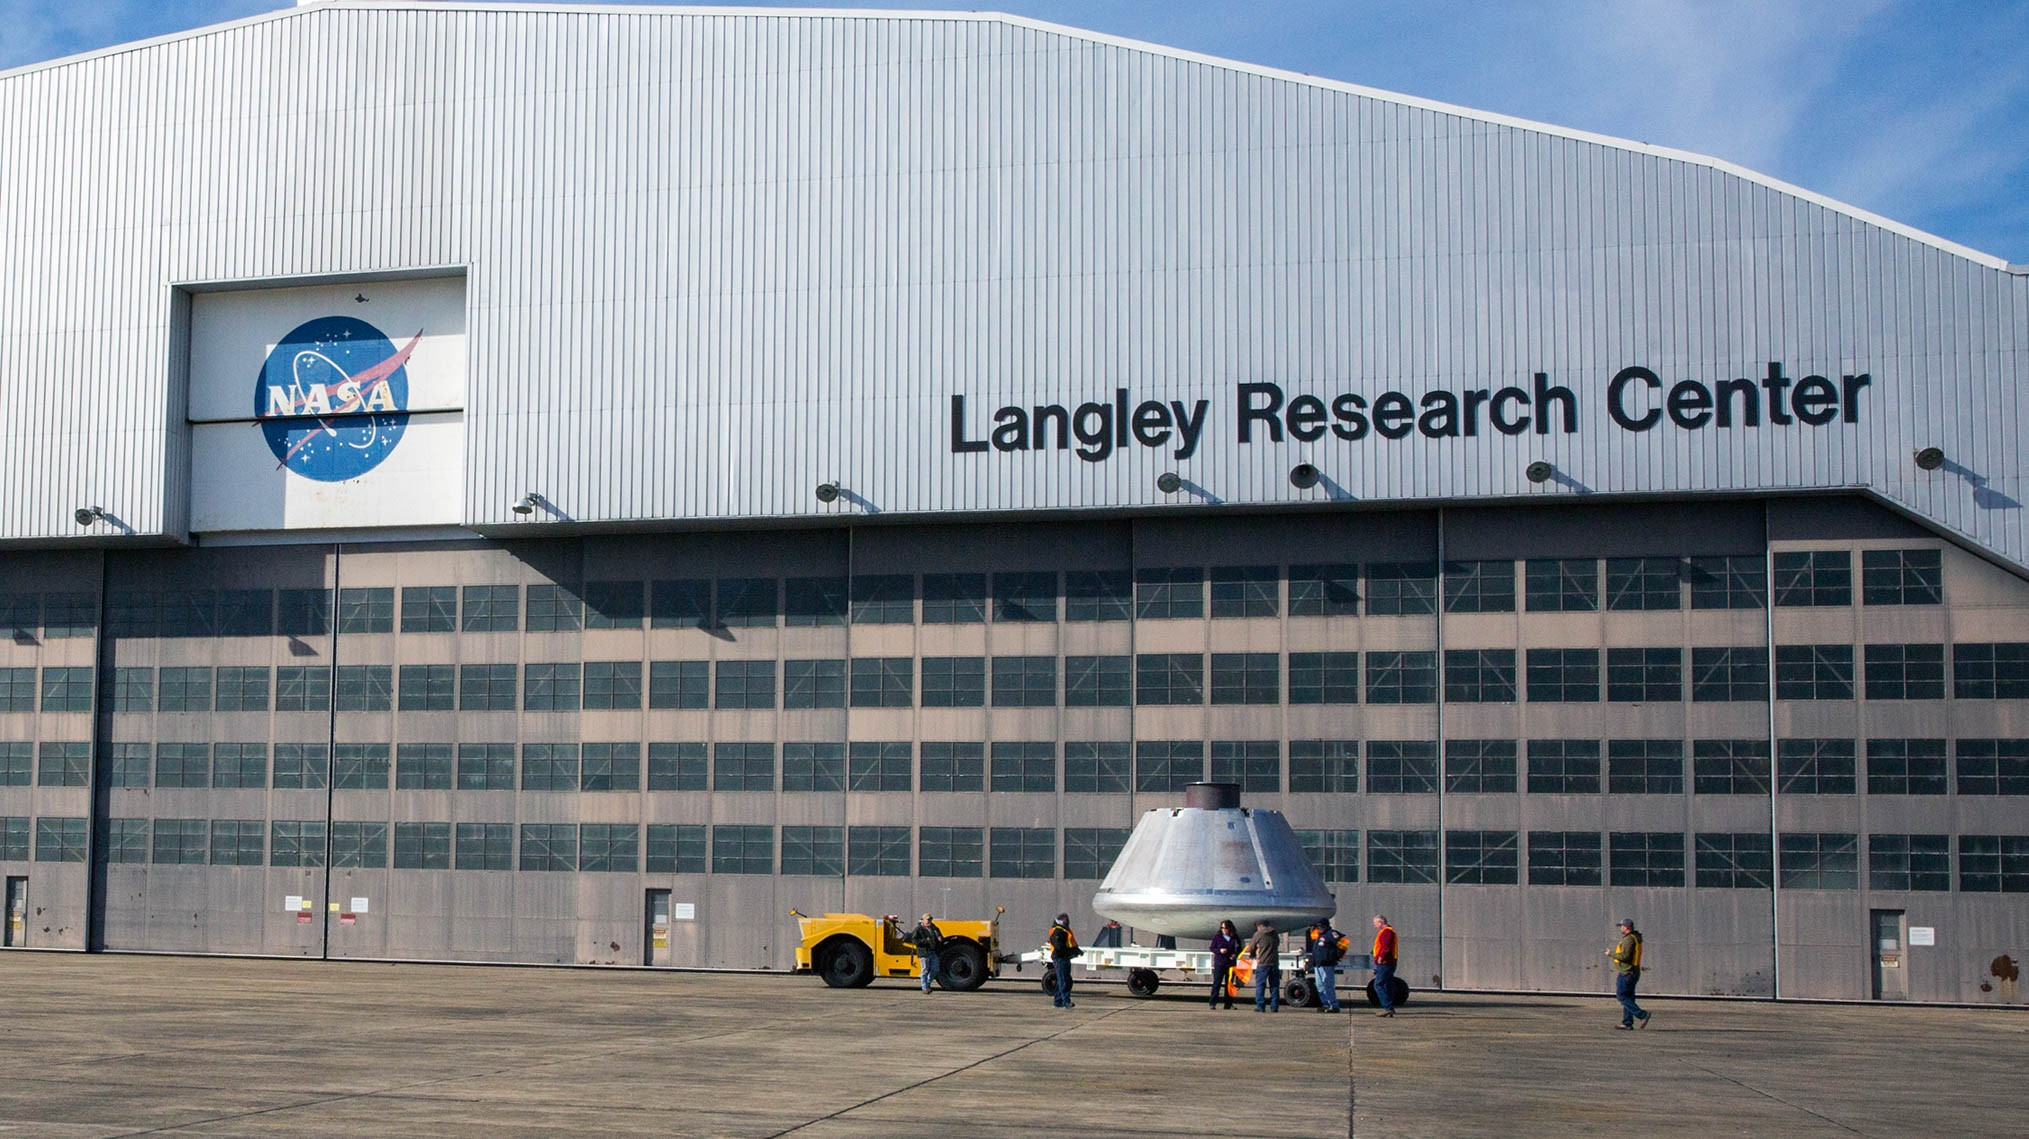 The Orion crew module is transported from NASA's Langley Research Center in Hampton, Virginia, to the Joint Base Langley-Eustis on 26 January 2018 to be painted before final testing and shipment to NASA's Johnson Space Center in Houston.Credit: NASA/David C. Bowman